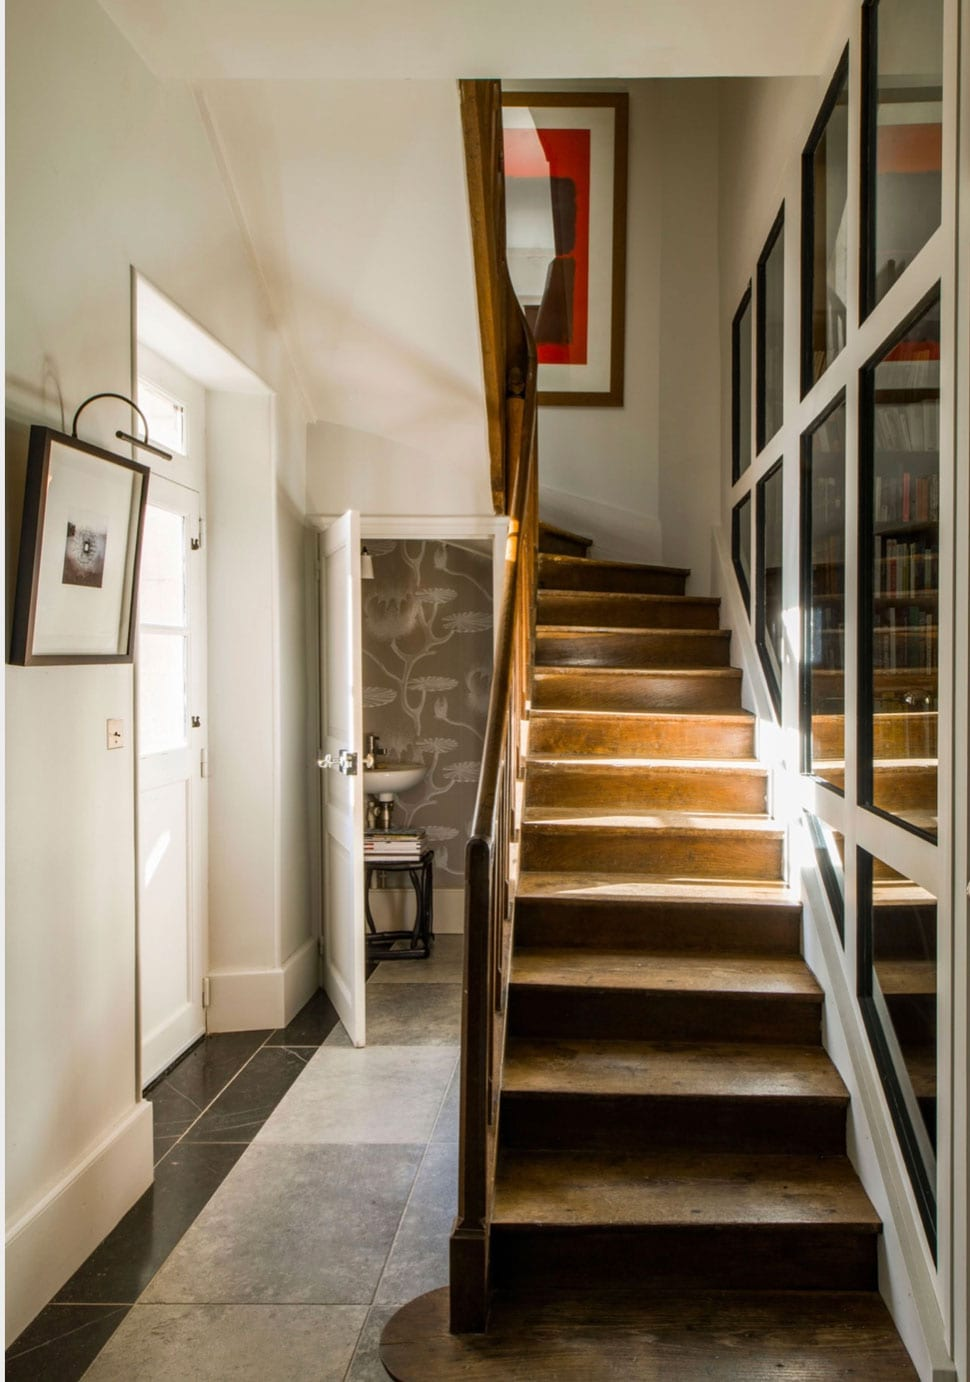 Staircase with window wall referenced in the Atlas Concorde USA blog from Architectural Digest